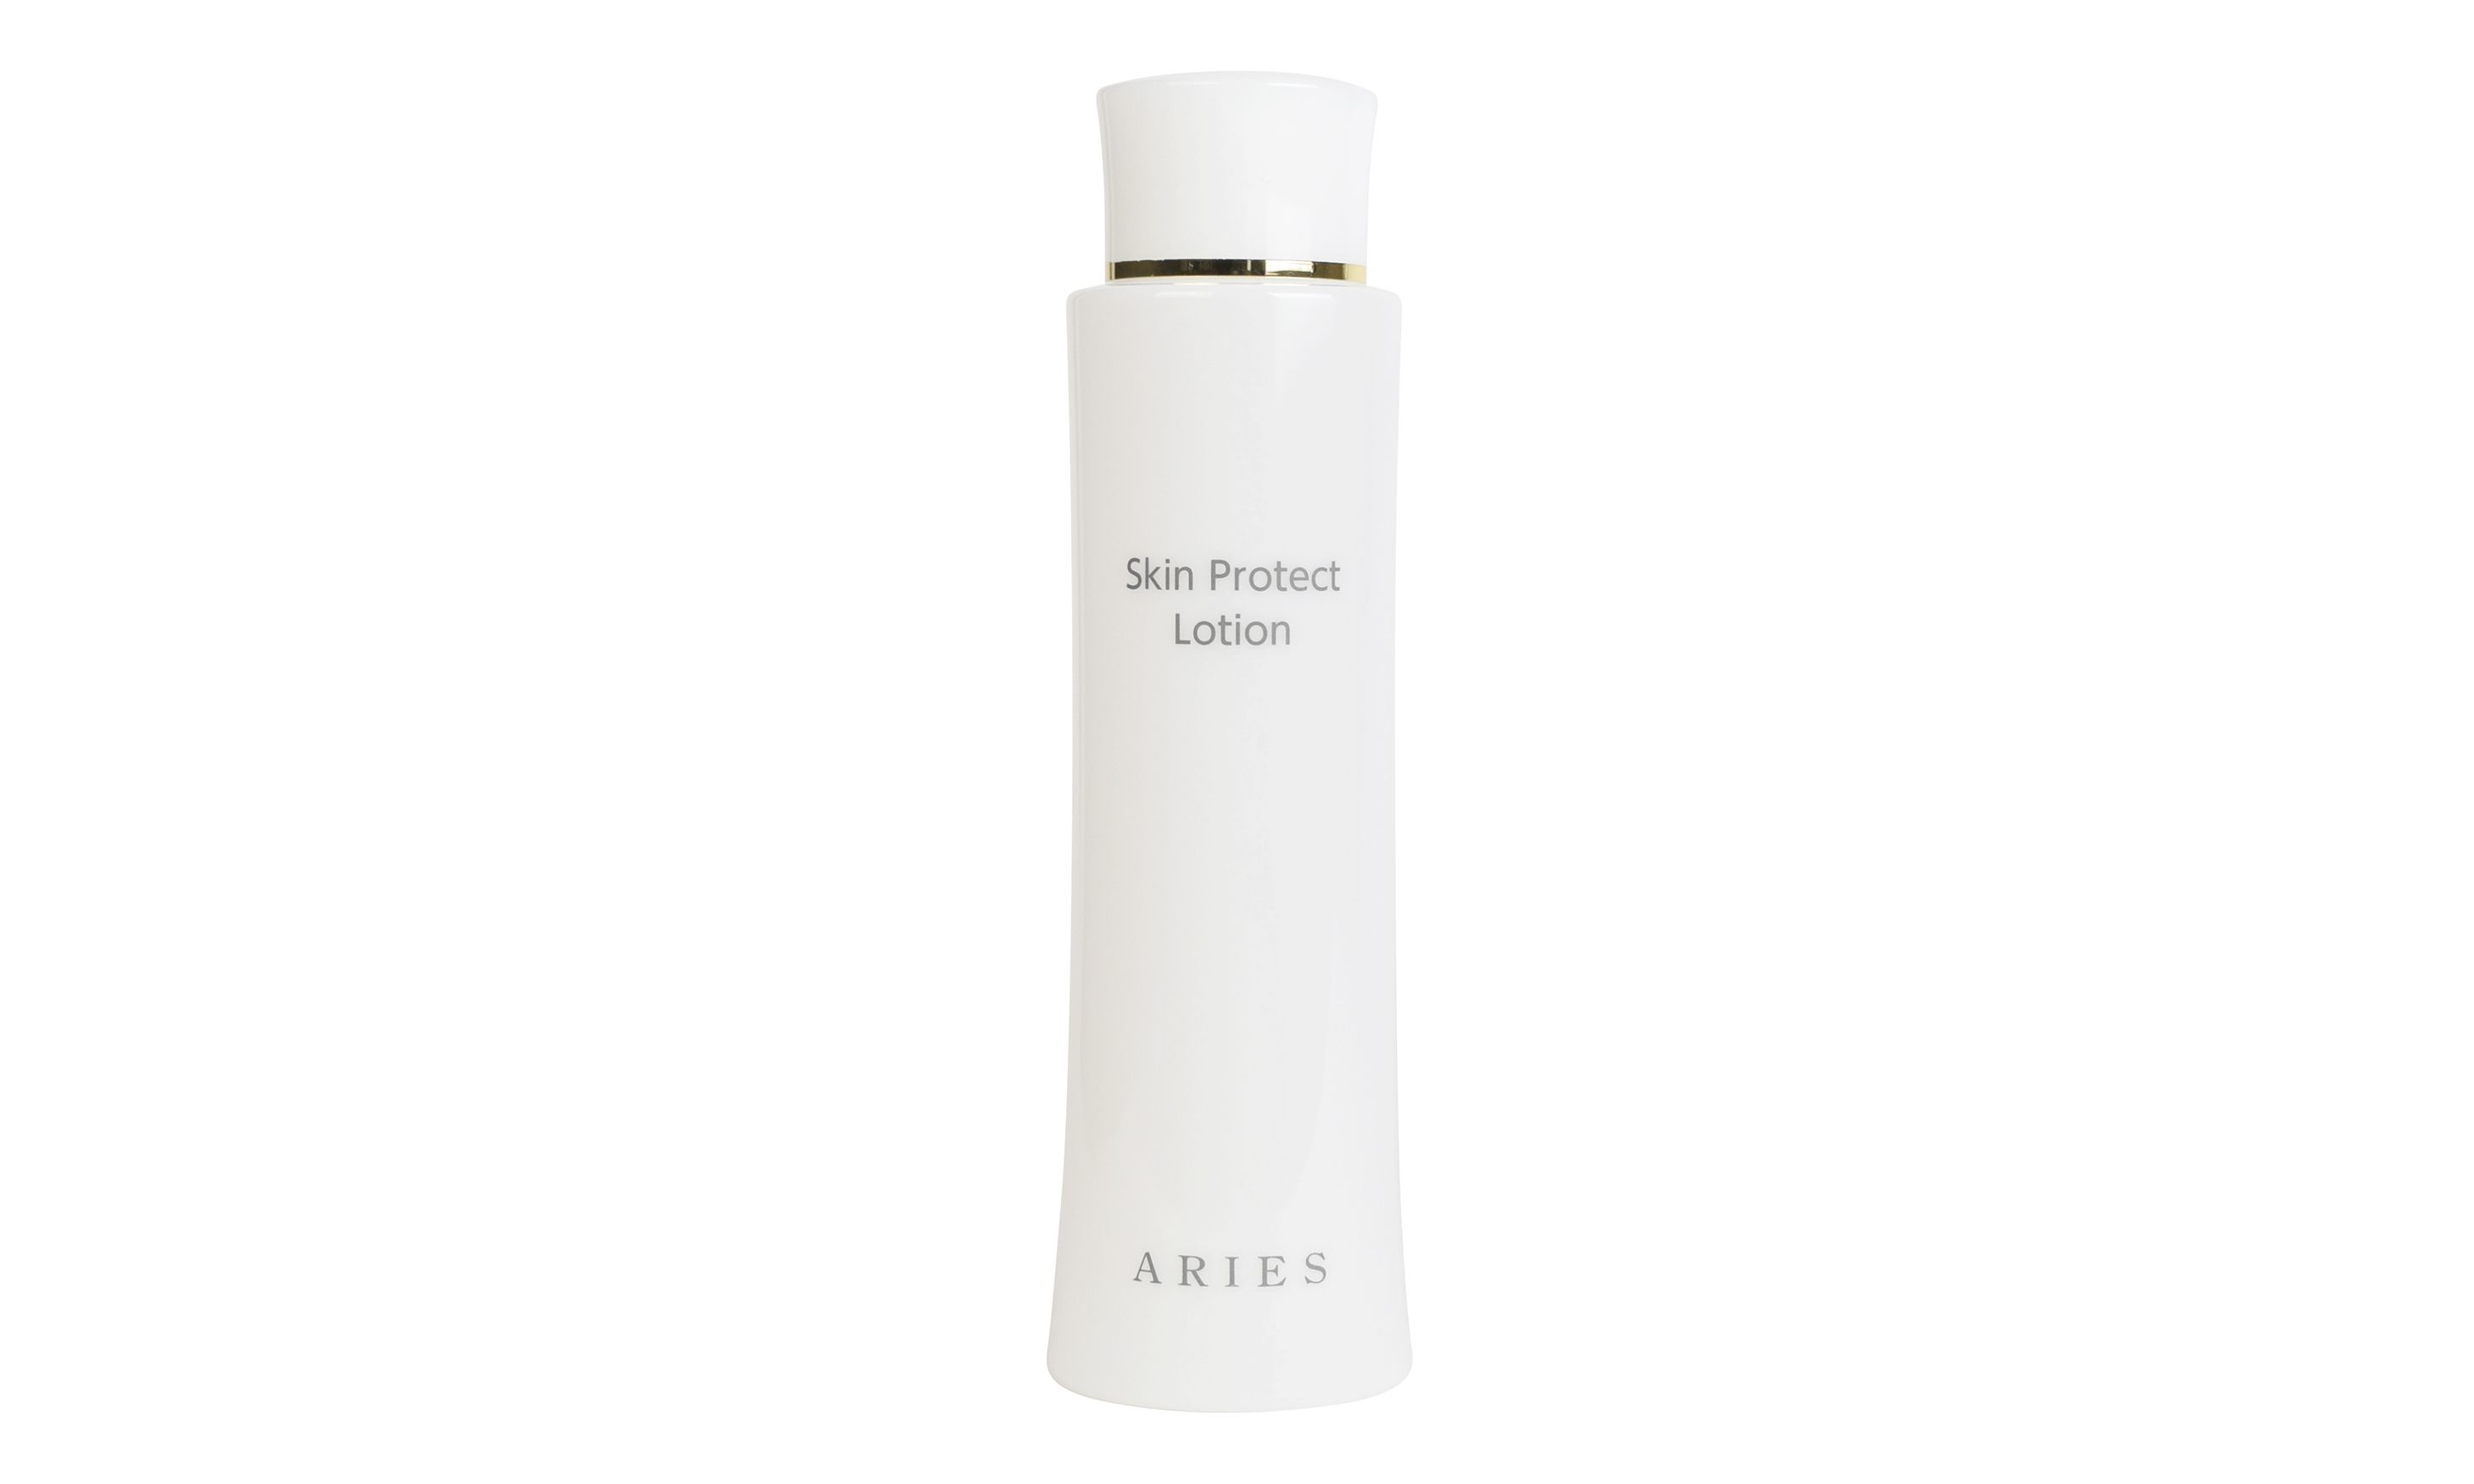 ARIES Skin Protect Lotion